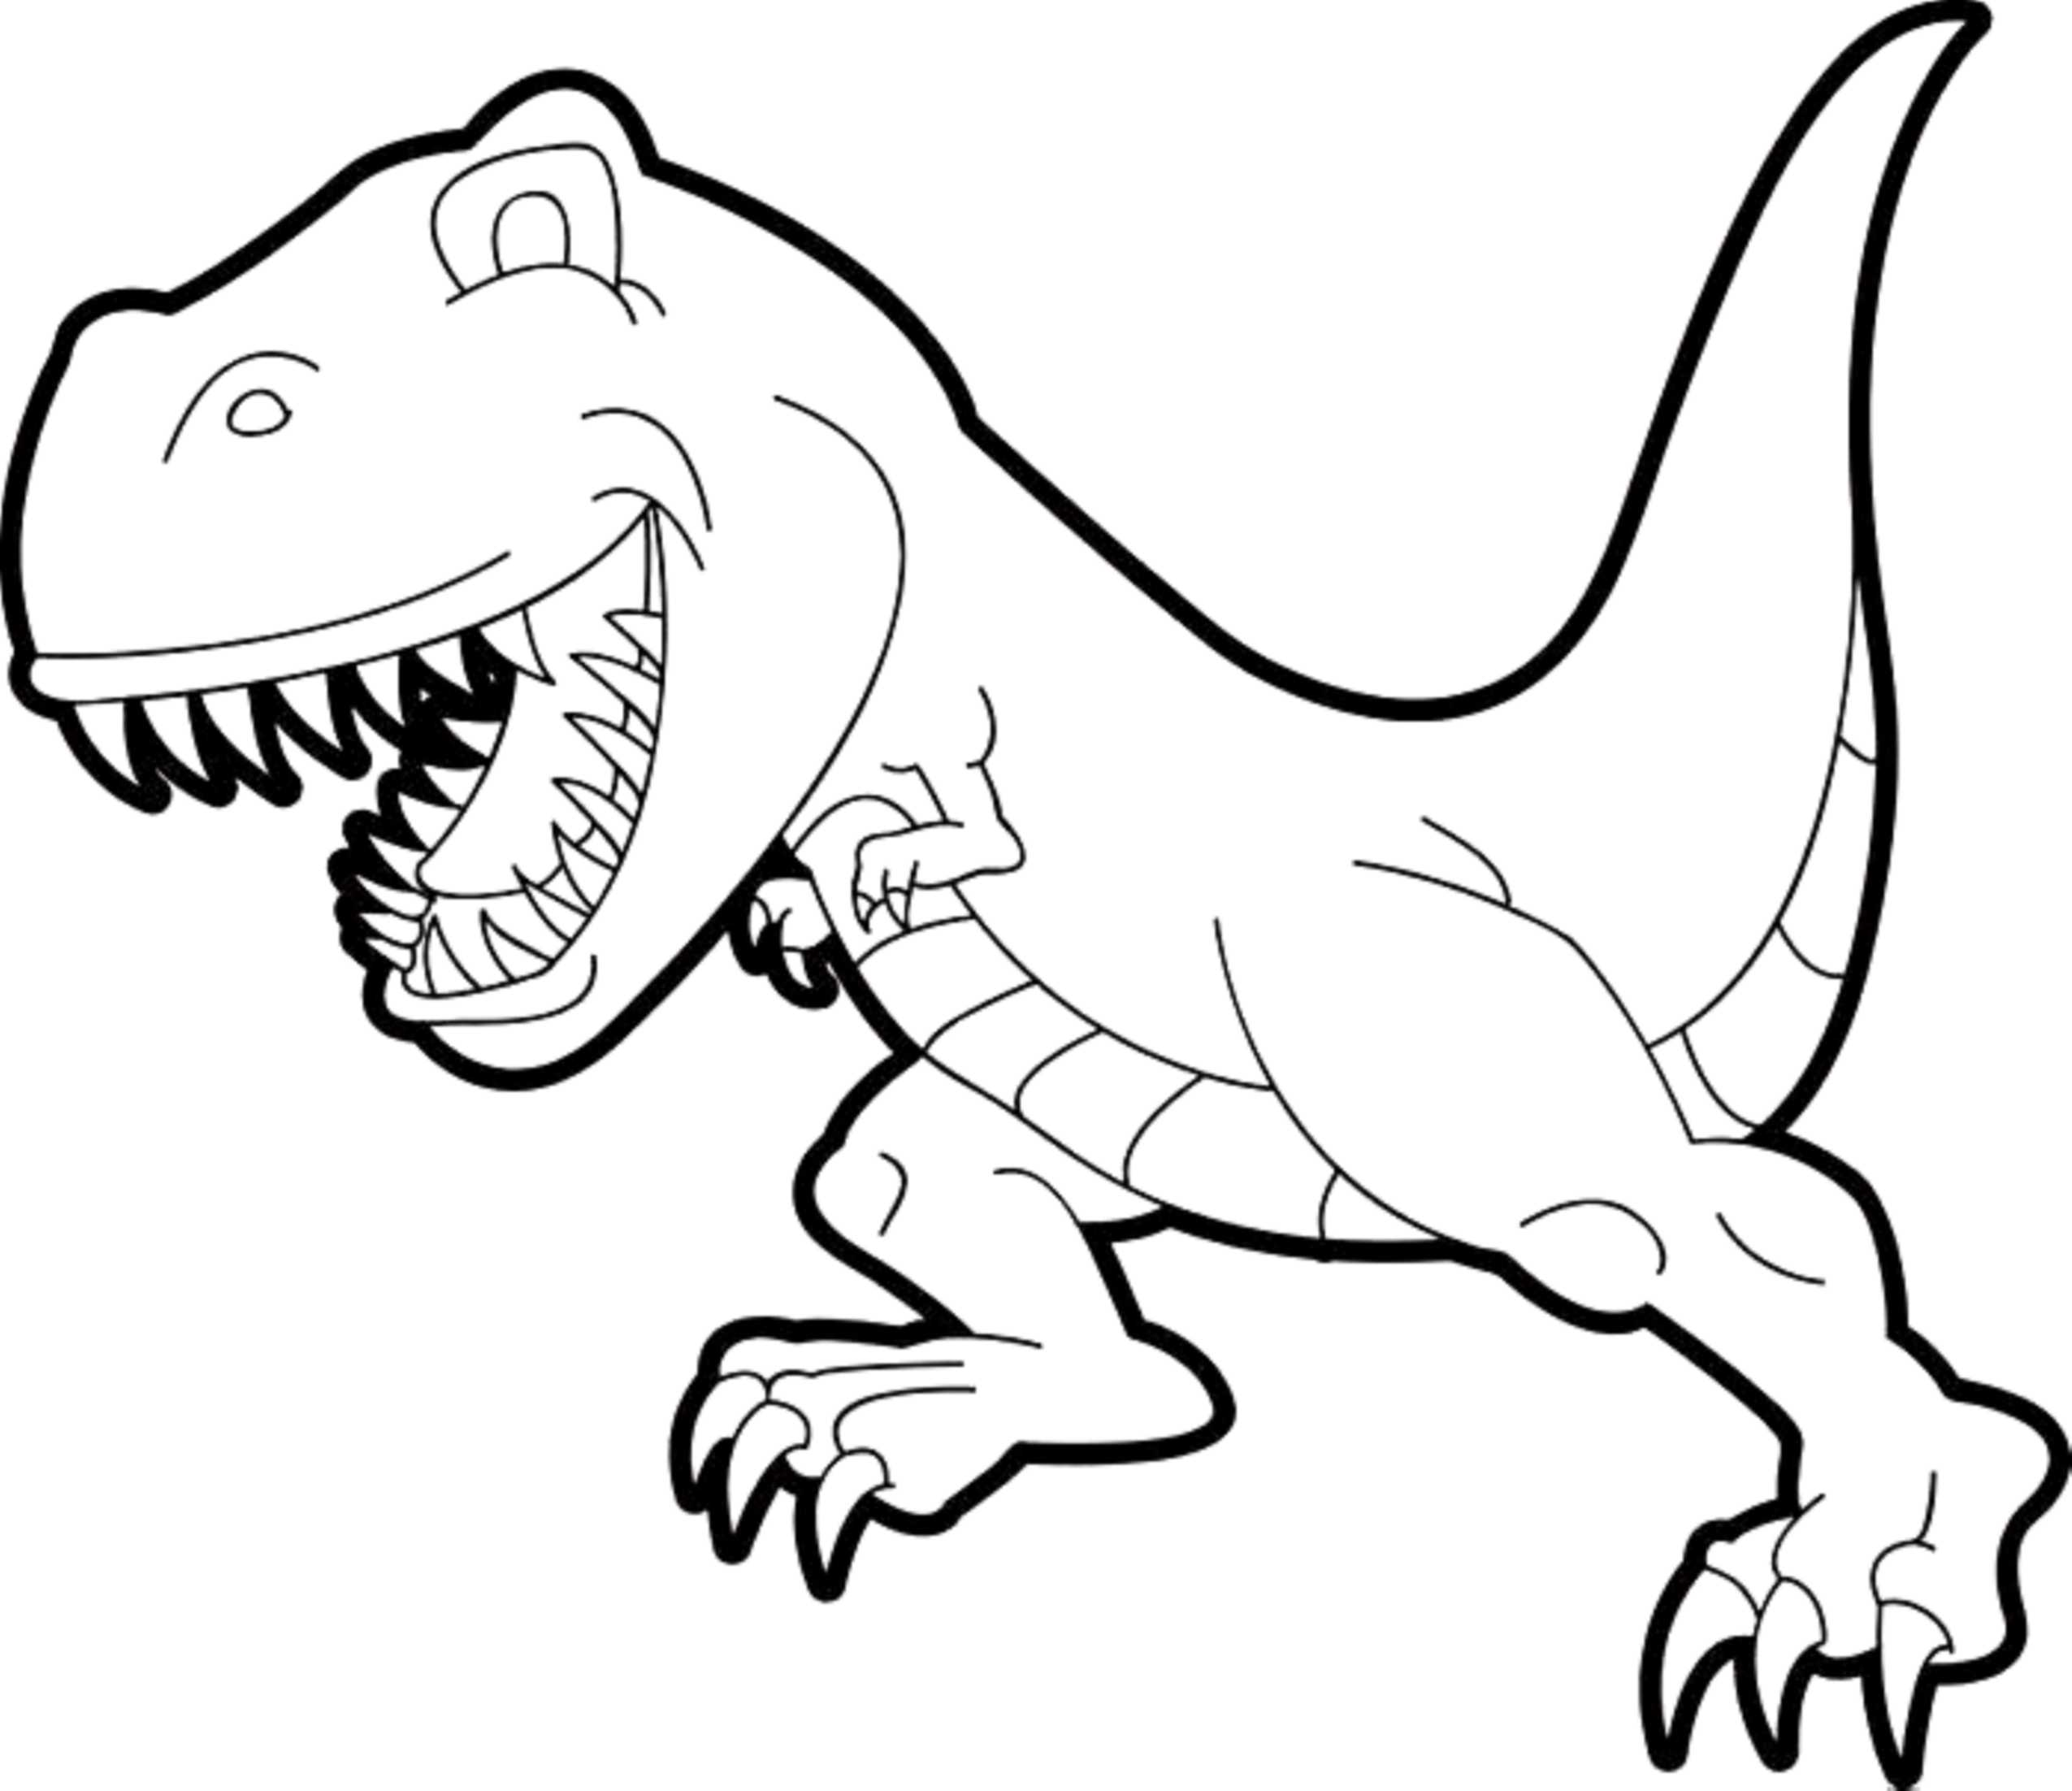 printable pictures of dinosaurs cute dinosaur coloring pages coloring home printable of dinosaurs pictures